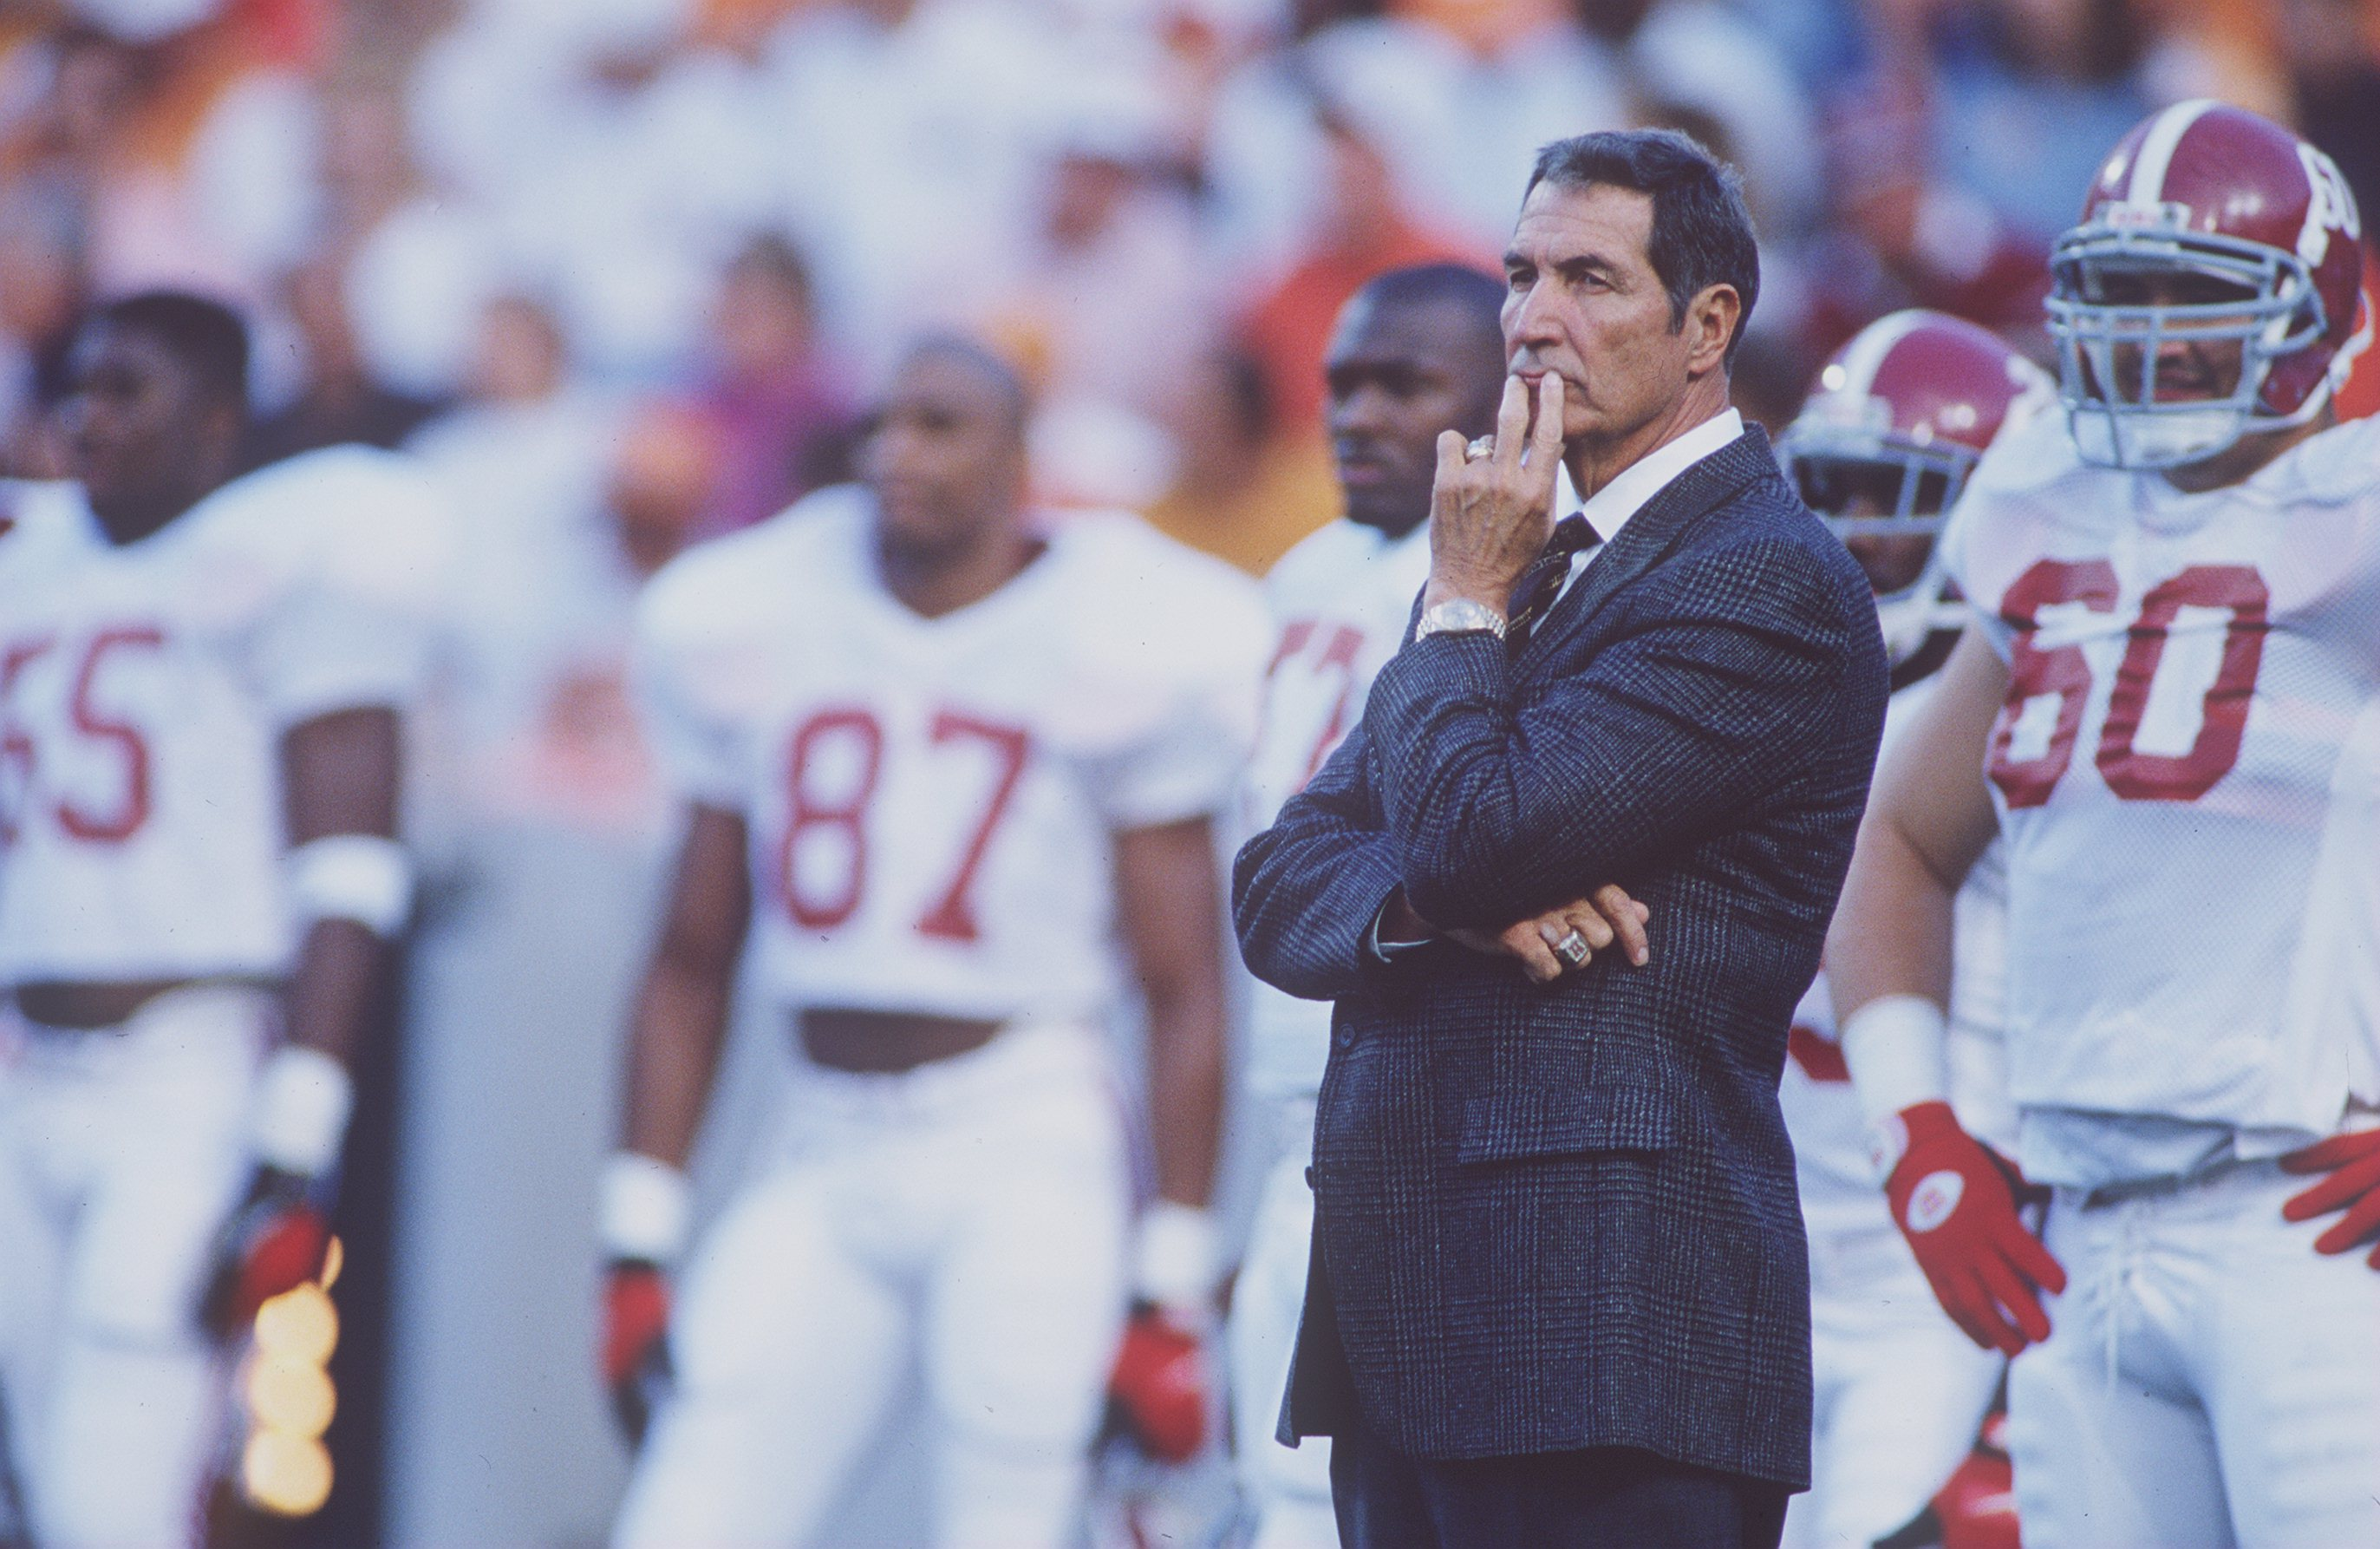 Coach Stallings aged visibly during the 1994 season.